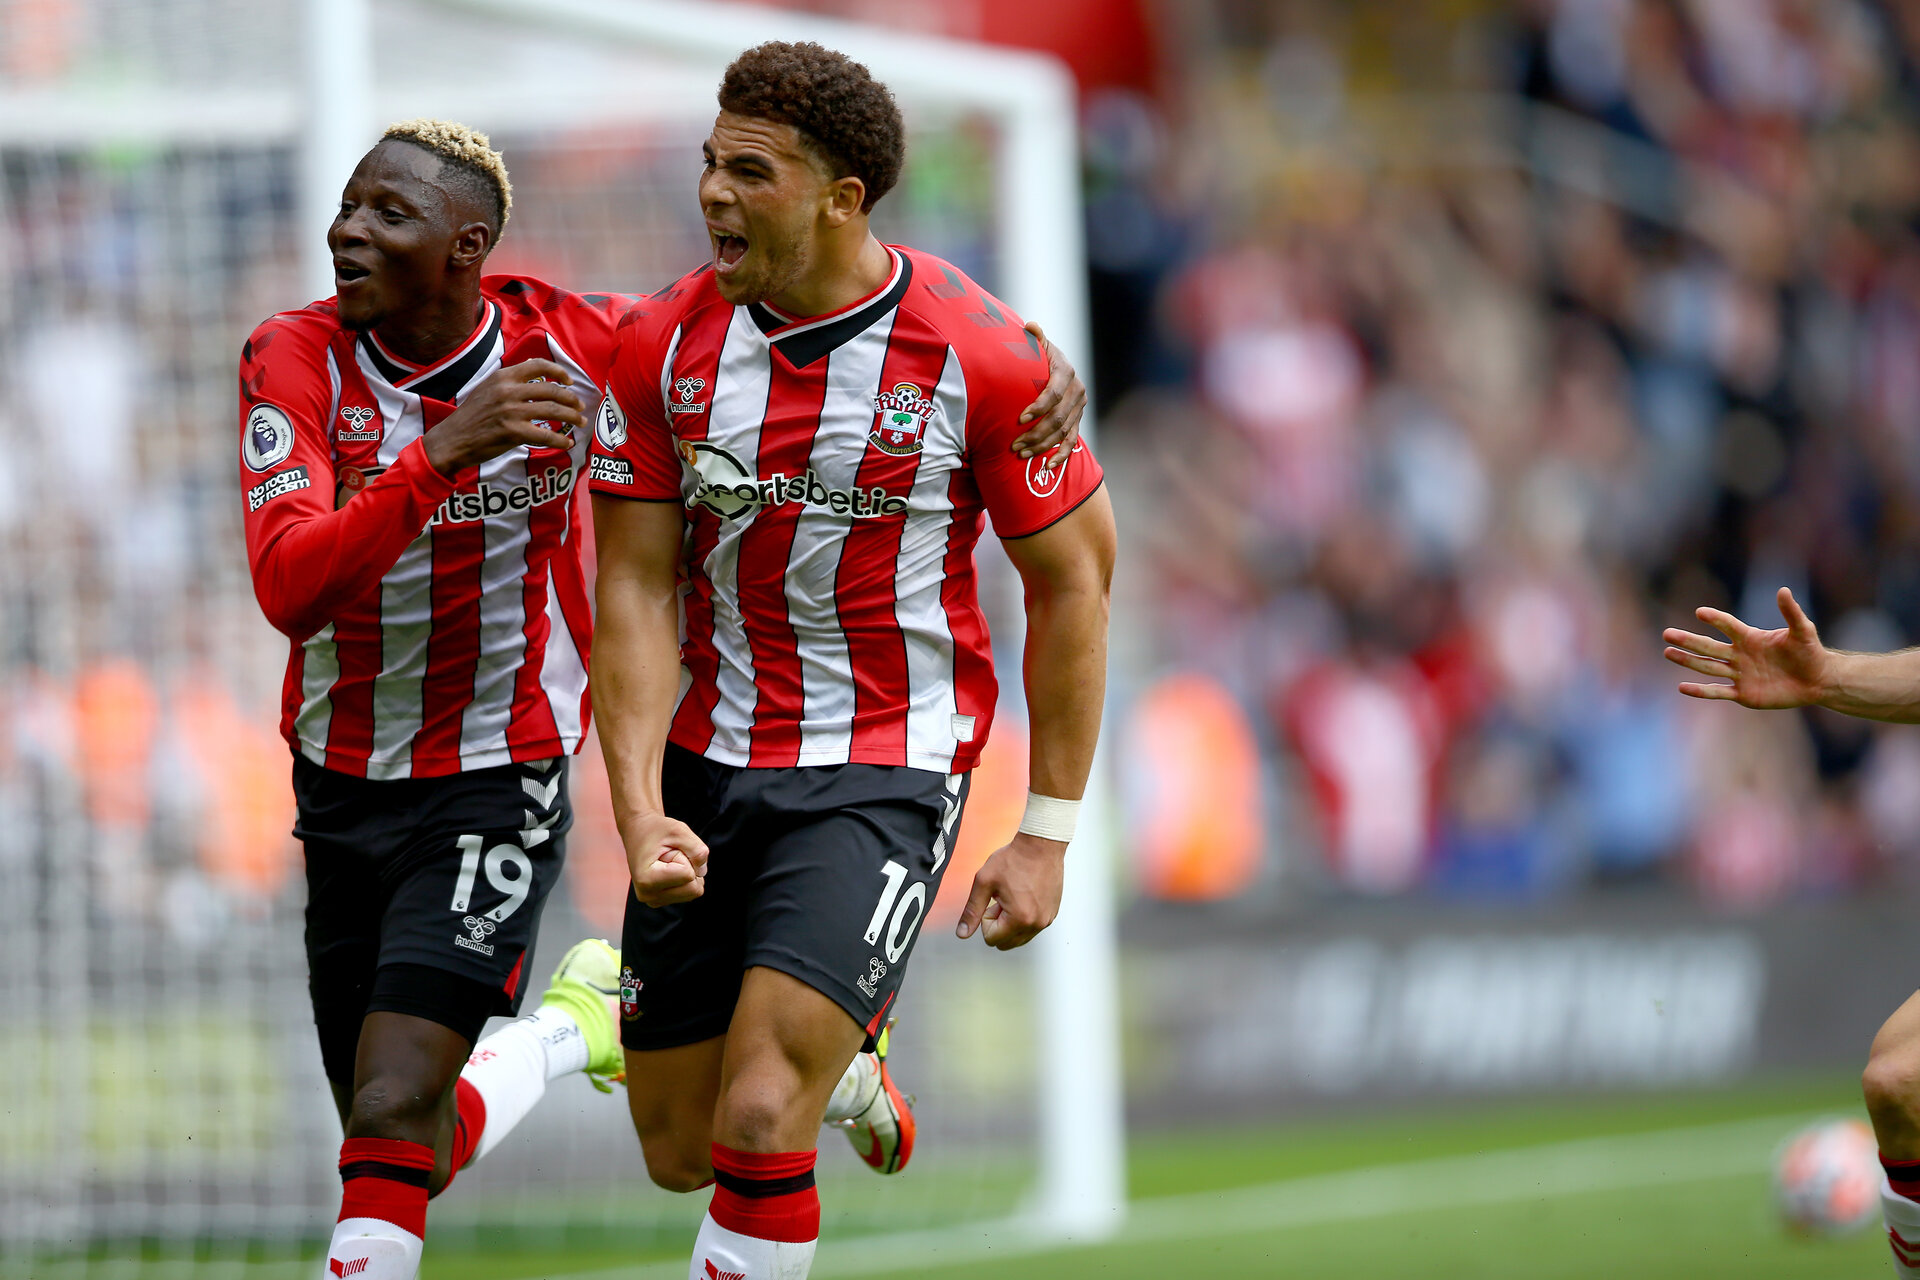 SOUTHAMPTON, ENGLAND - AUGUST 22: during the Premier League match between Southampton  and  Manchester United at St Mary's Stadium on August 22, 2021 in Southampton, England. (Photo by Isabelle Field/Southampton FC via Getty Images)